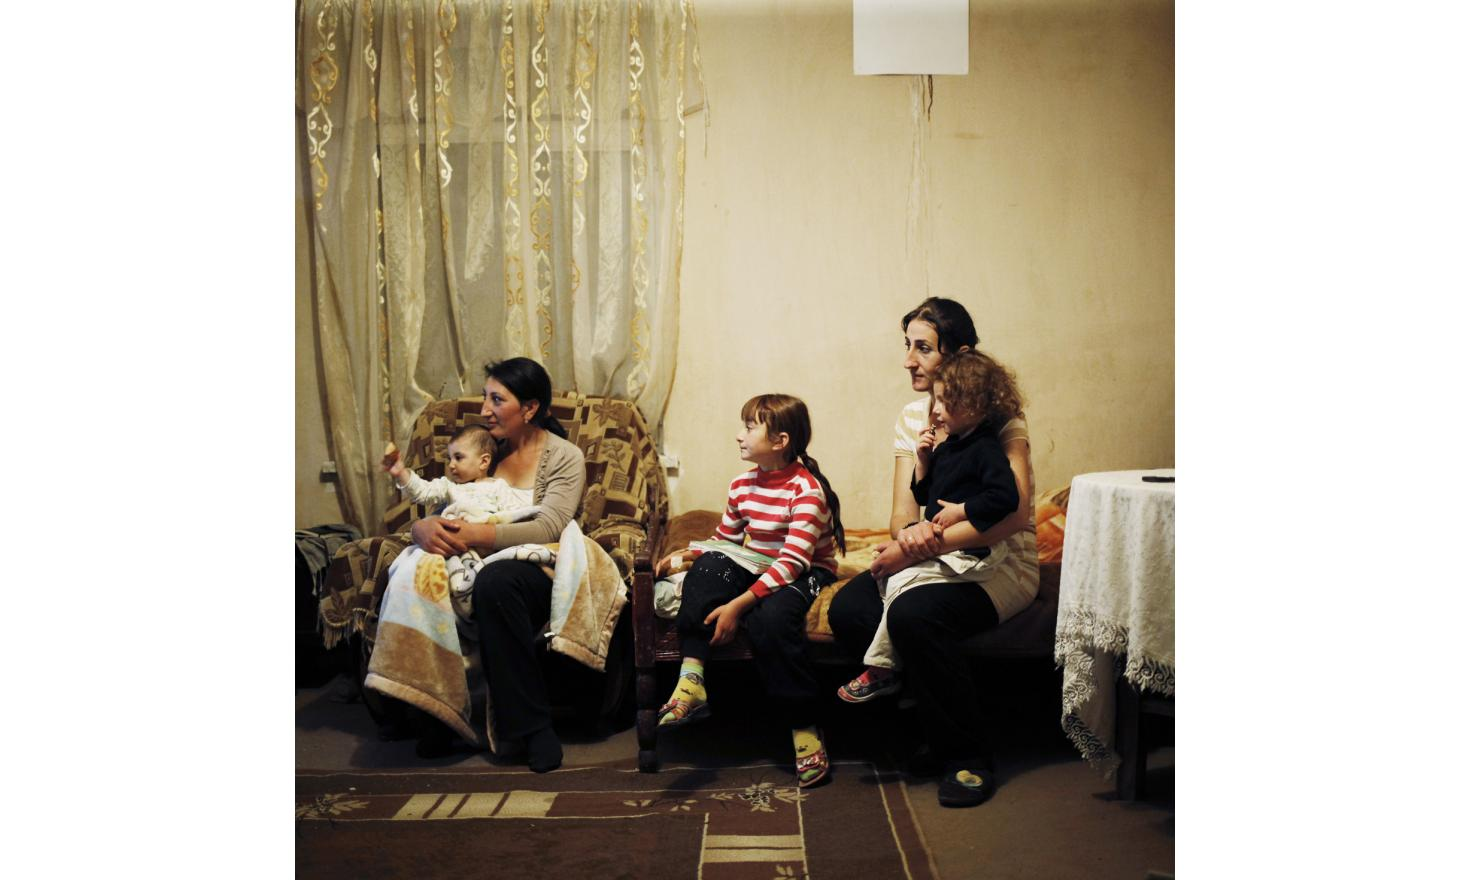 Anoush and Ruzanna are watching TV with three of their children.